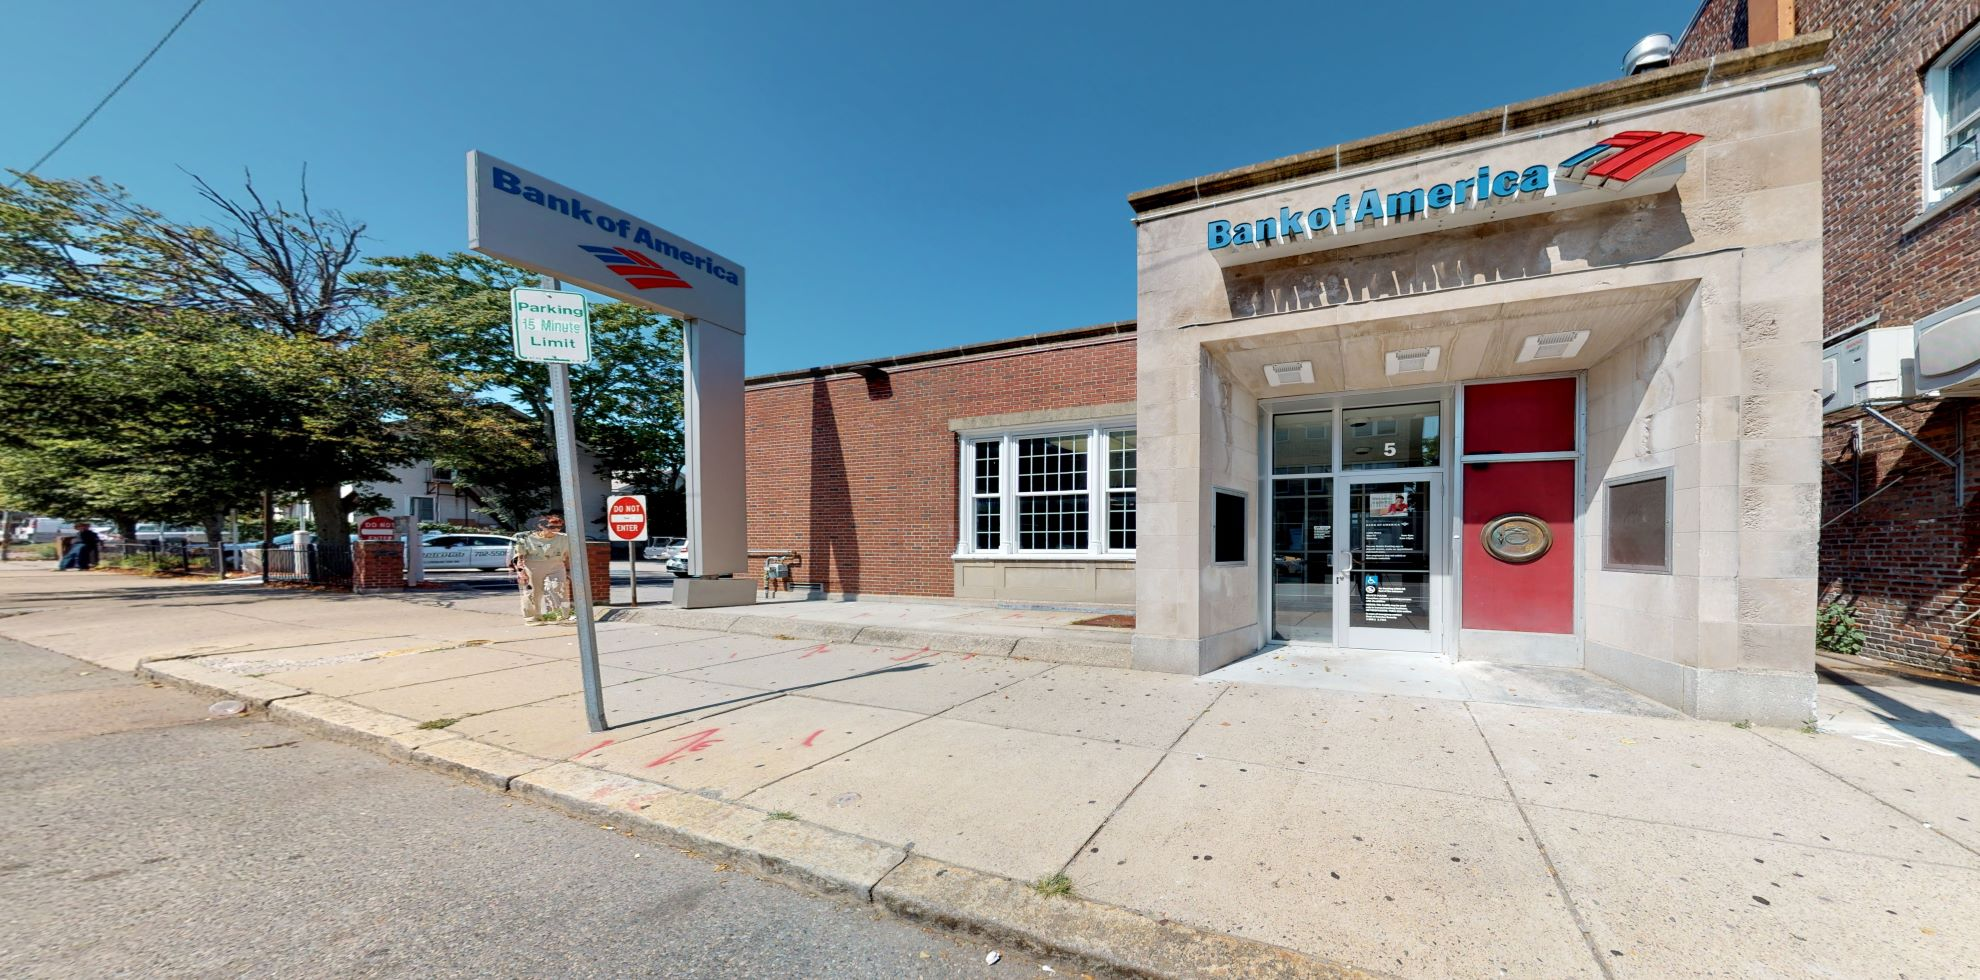 Bank of America financial center with drive-thru ATM | 5 Chestnut Hill Ave, Brighton, MA 02135